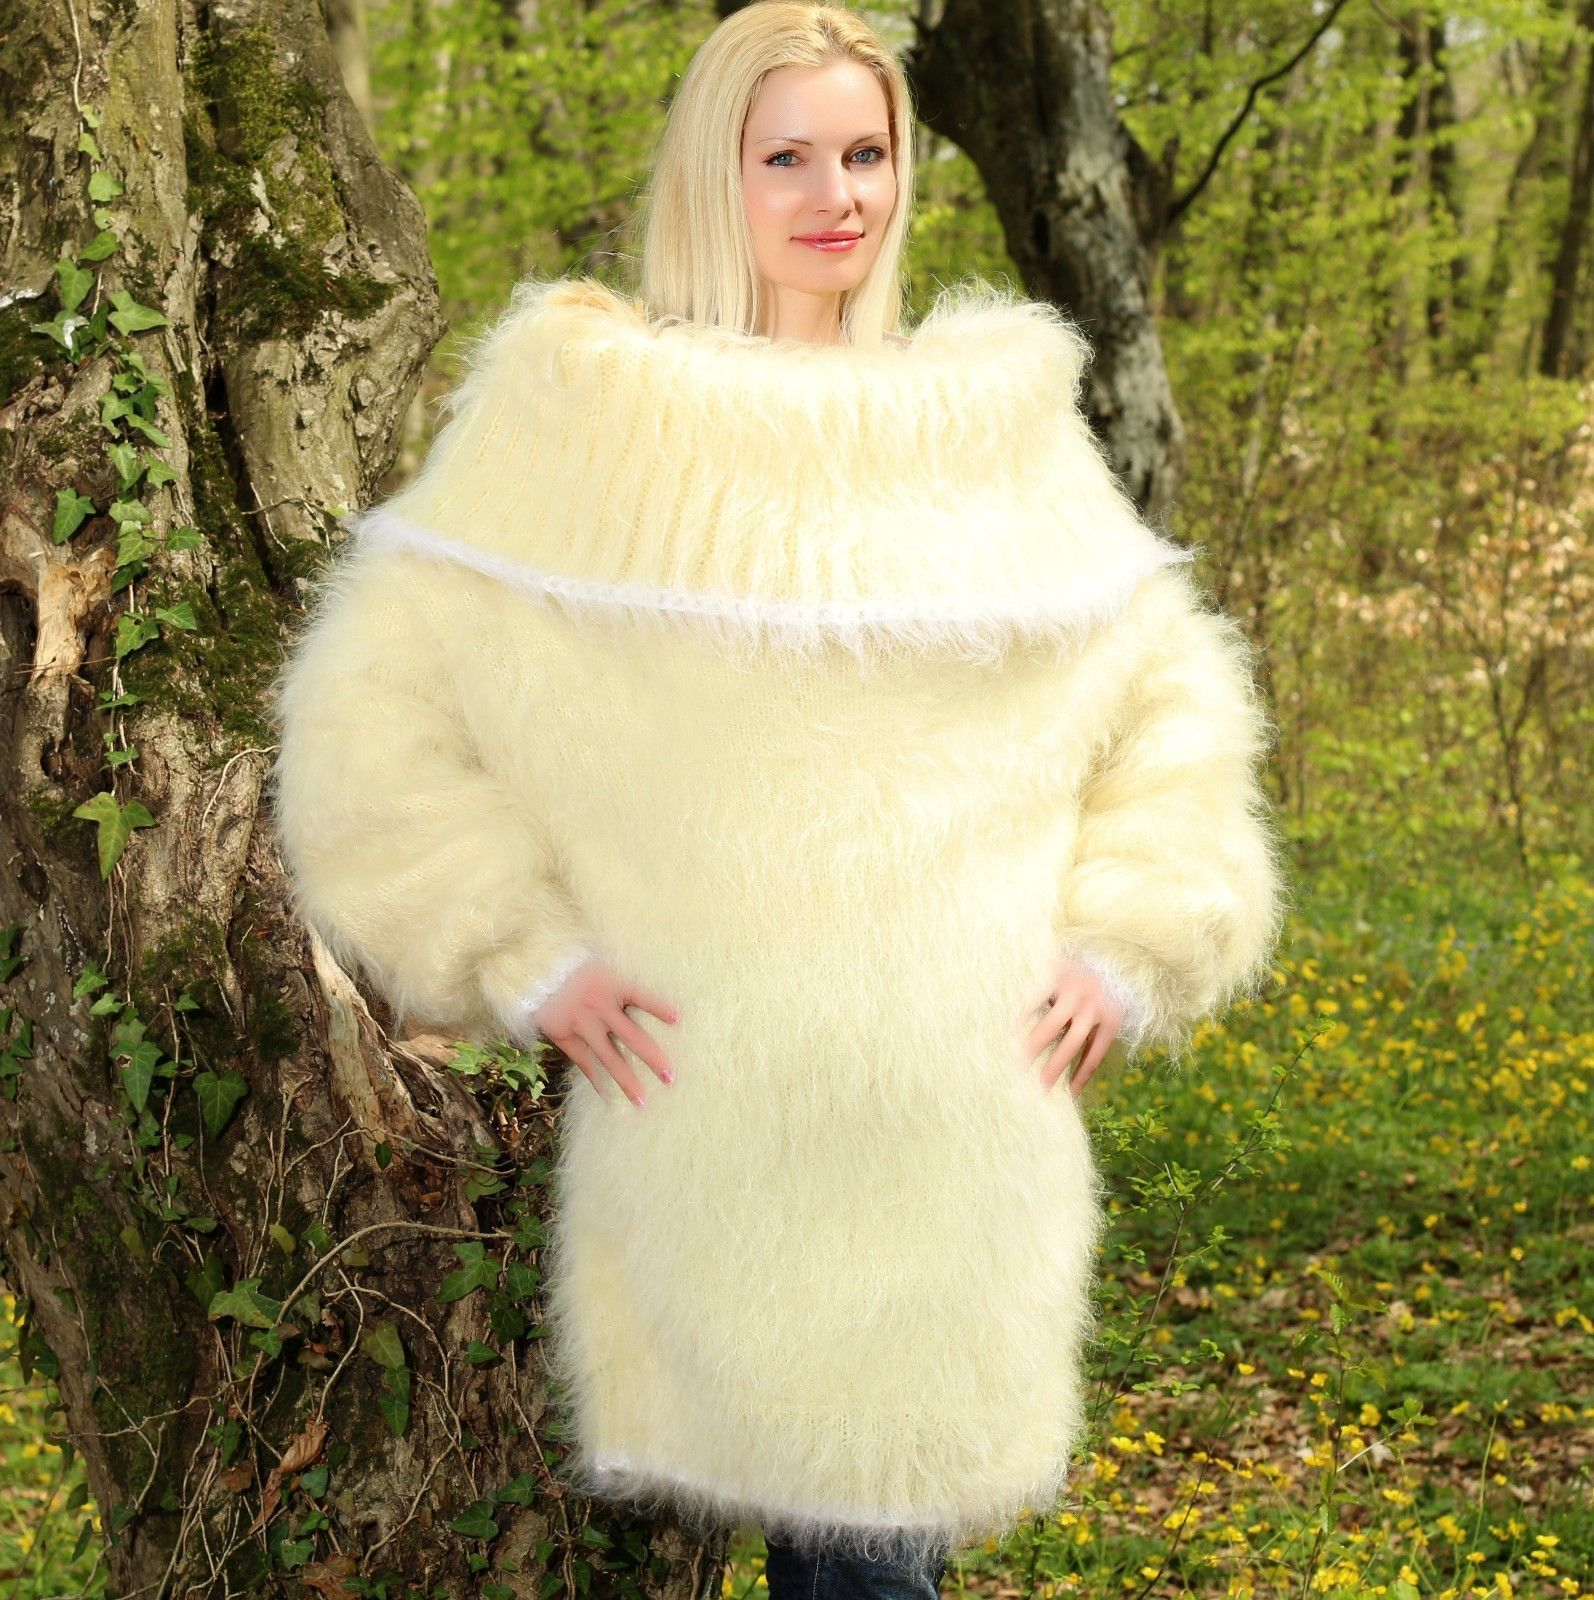 Details about SUPERTANYA IVORY Hand Knitted Mohair Sweater Fuzzy ...